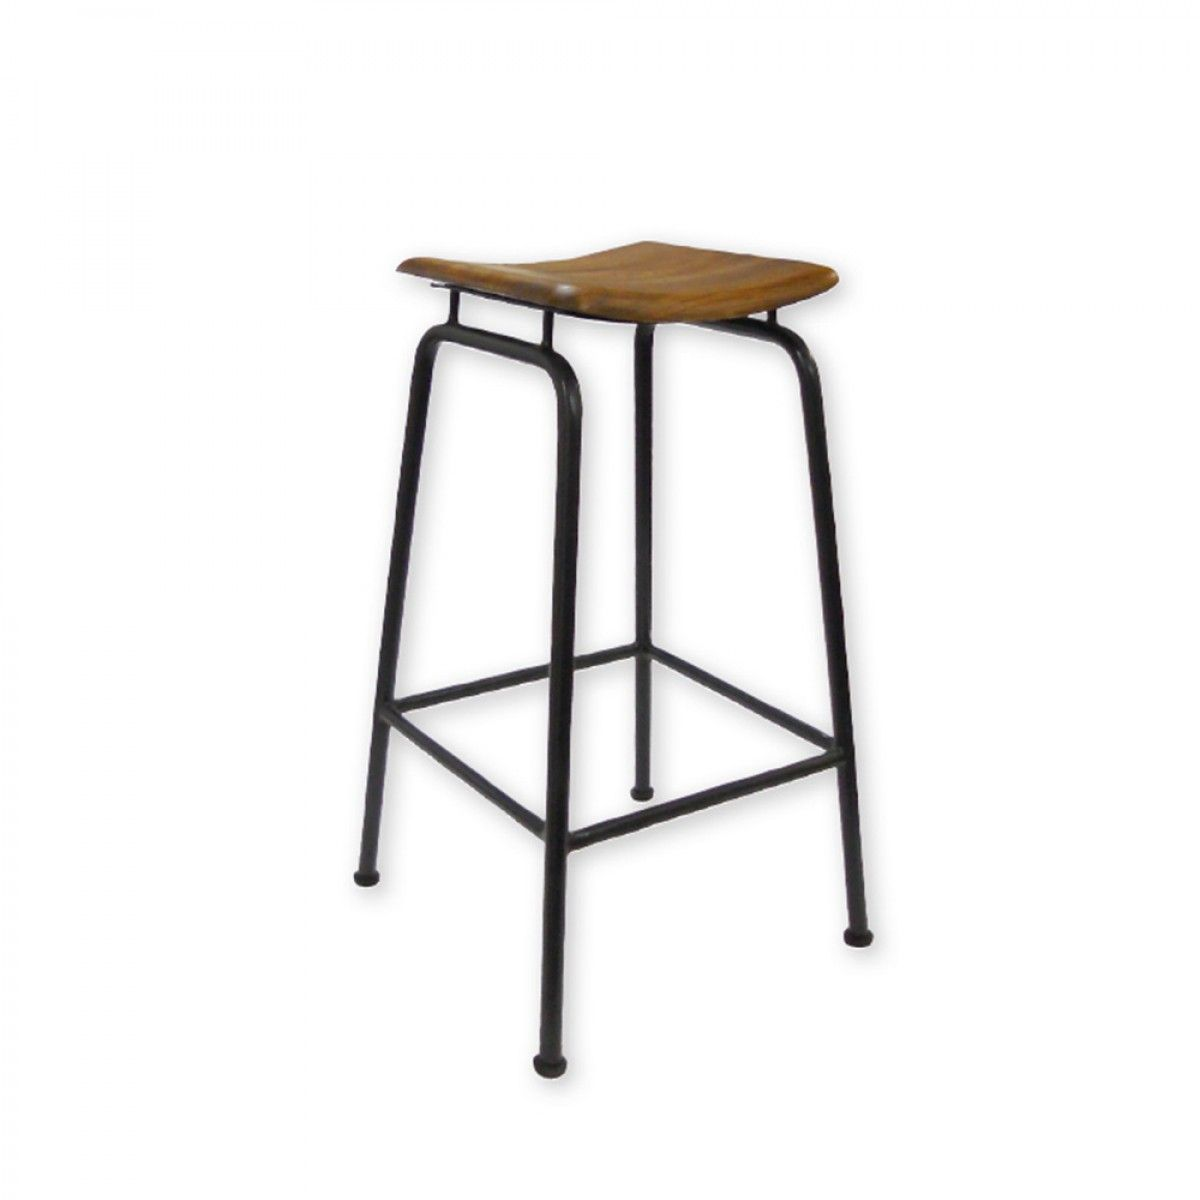 Amazing Clifton Indoor Saddle Stool Chairs Barstools Dining Gamerscity Chair Design For Home Gamerscityorg